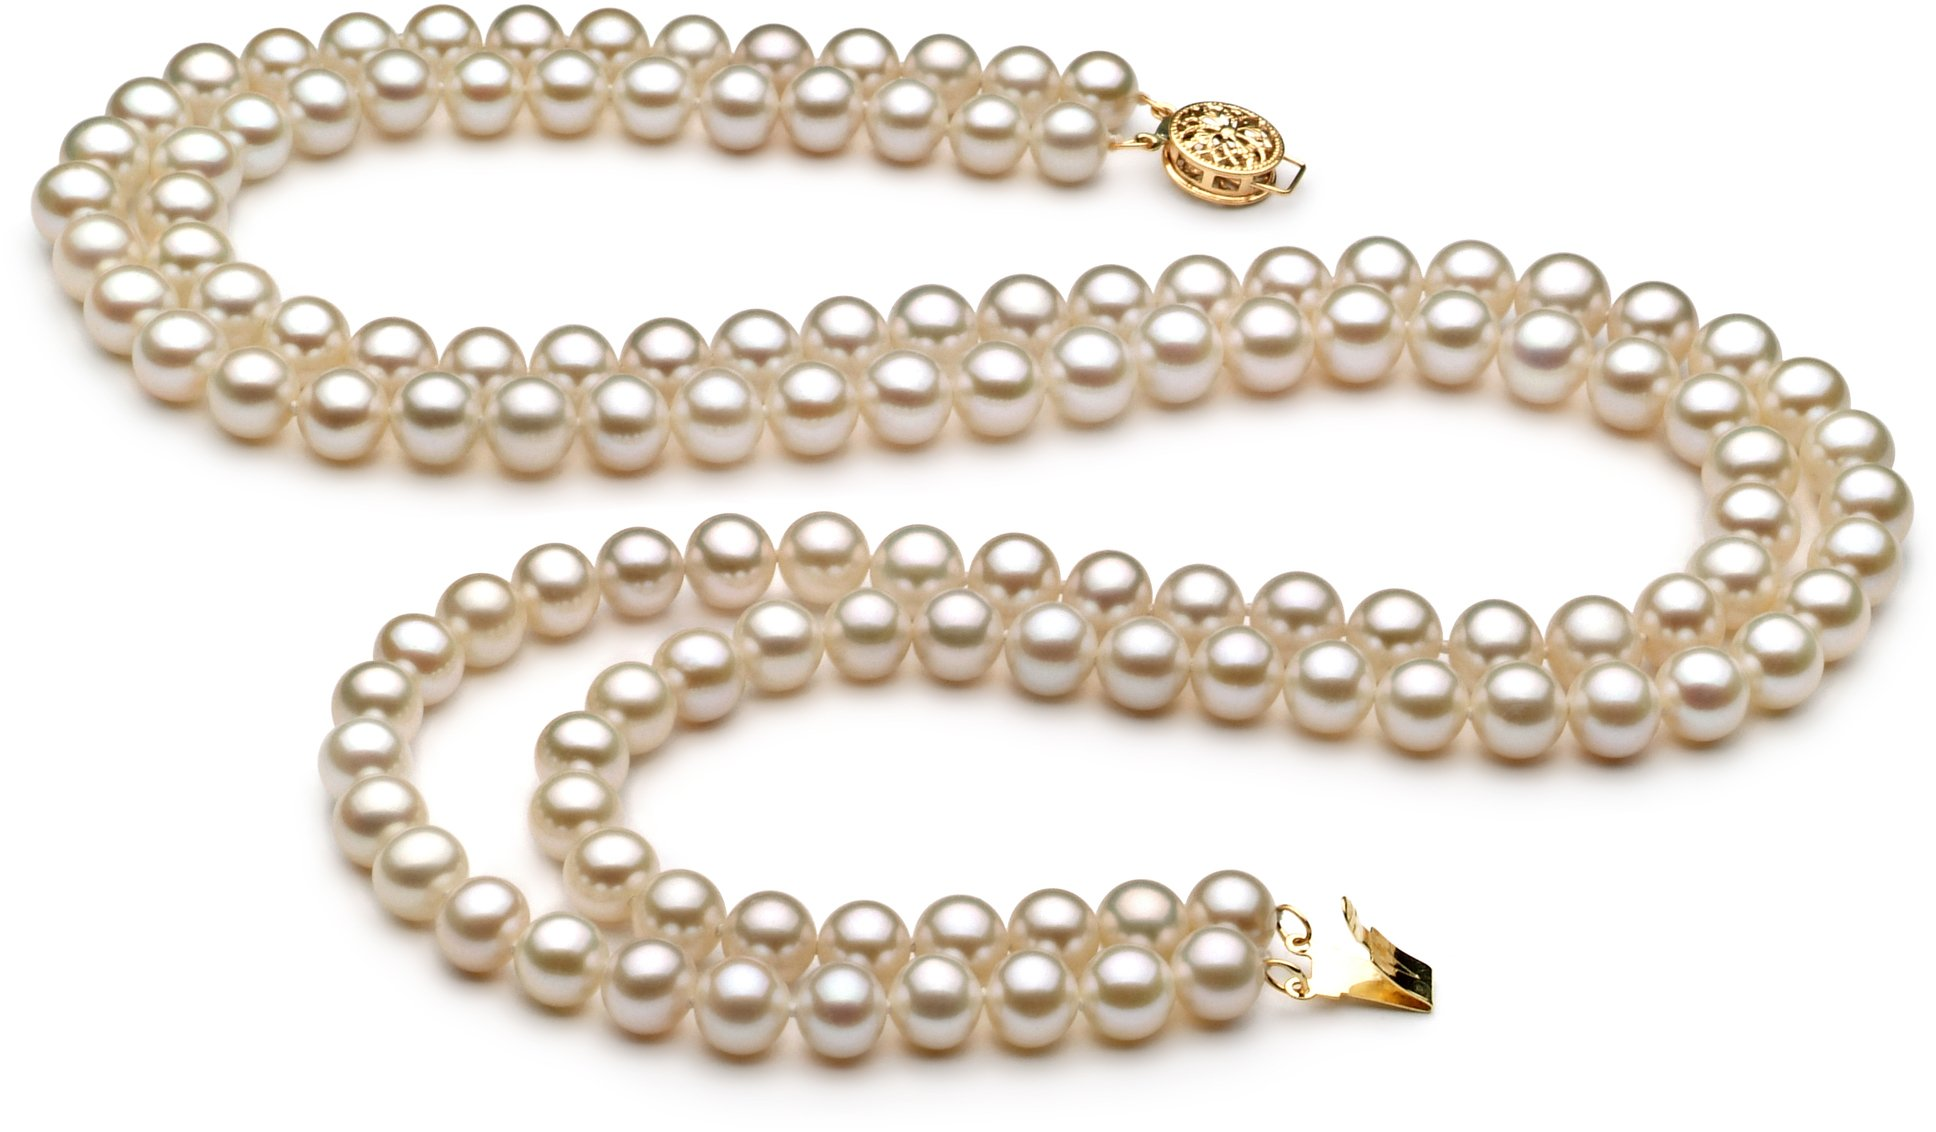 PearlsOnly - Liska White 6-7mm Double Strand AA Quality Freshwater Cultured Pearl Set-18 in Princess length by PearlsOnly (Image #2)